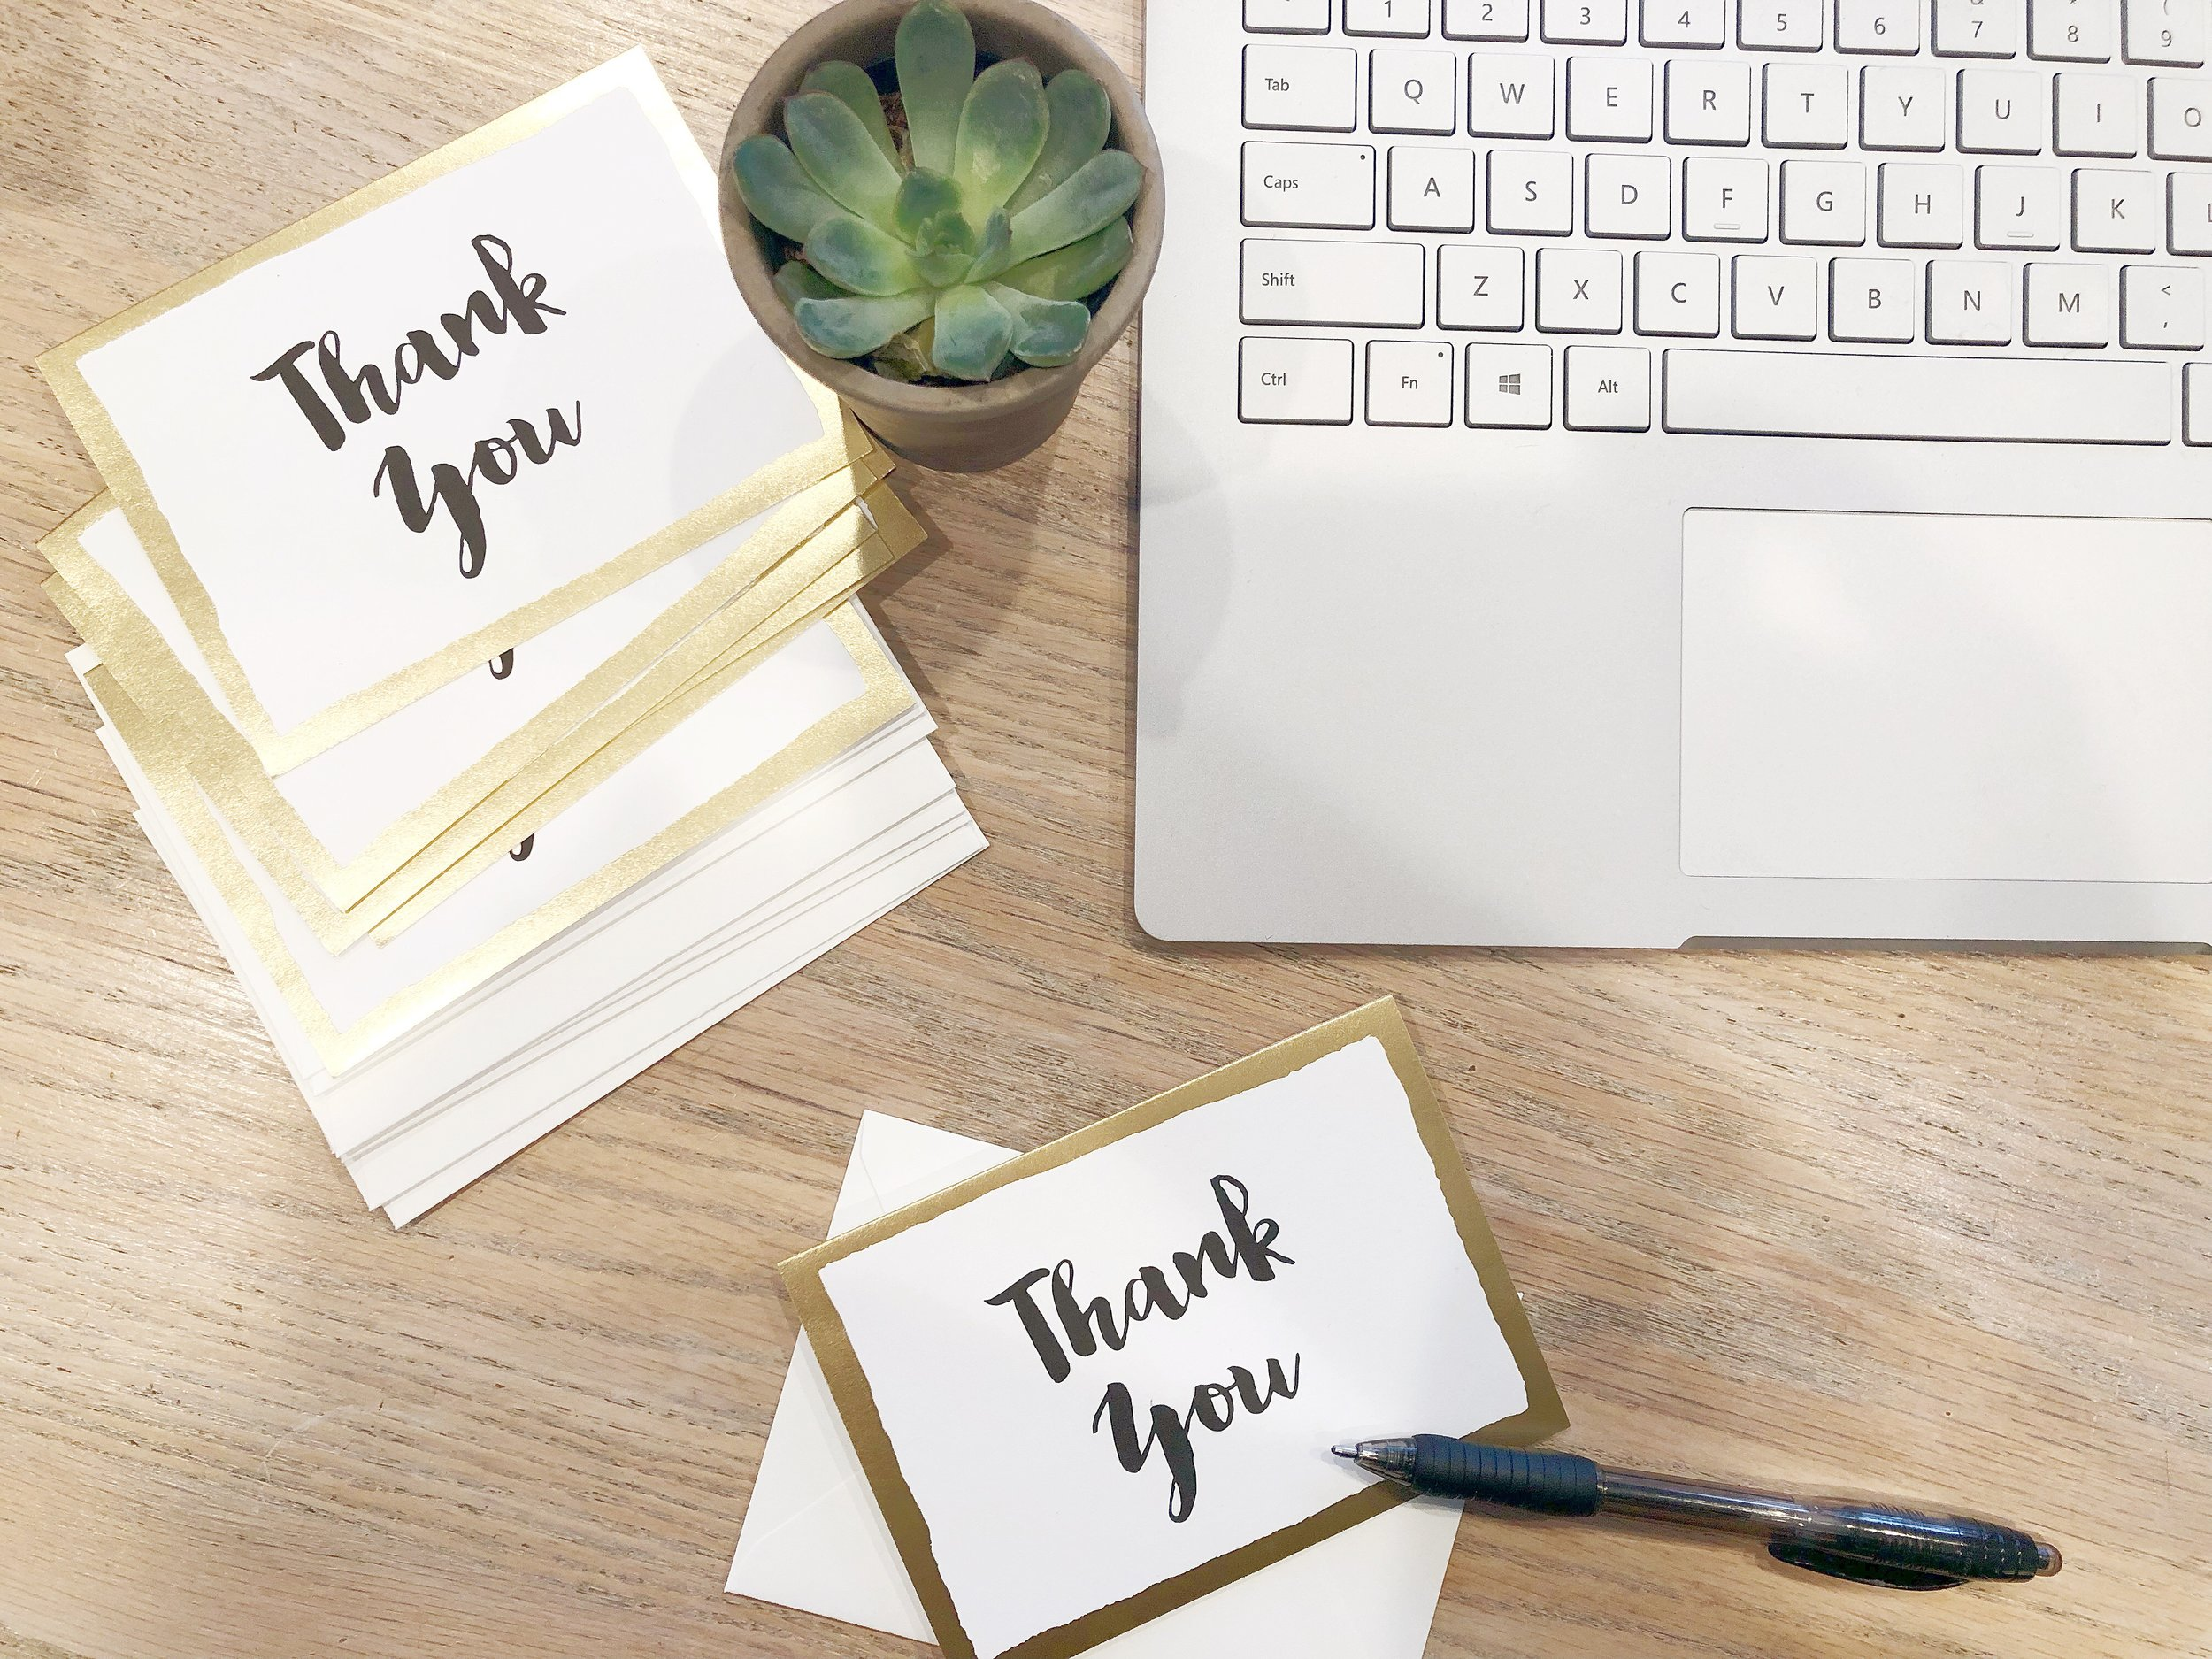 Best thank you notes and cards on Amazon.